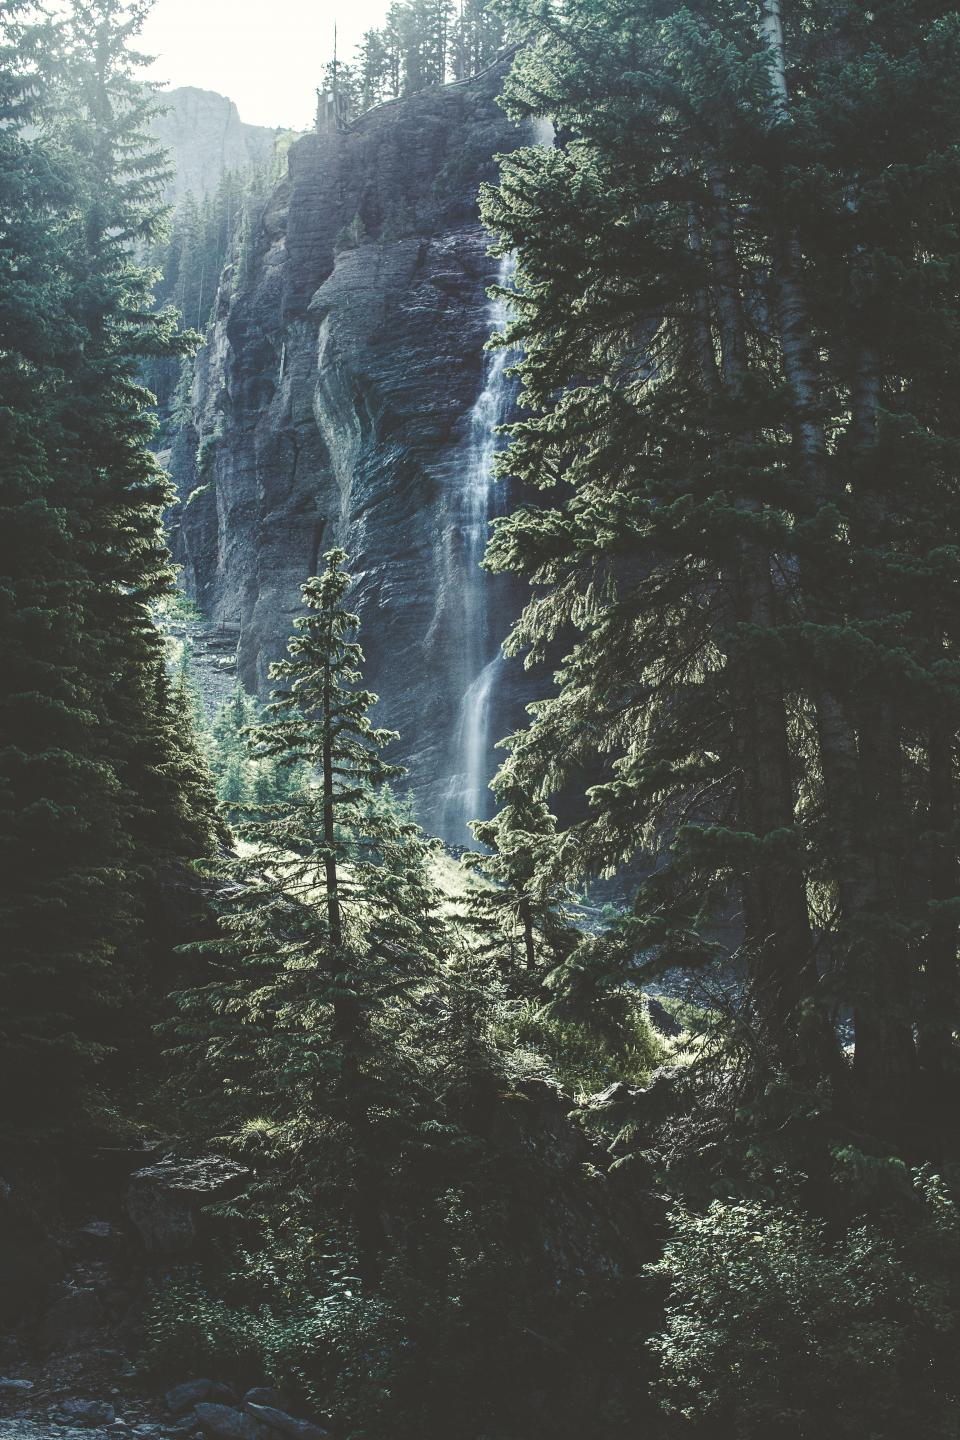 pine, trees, leaves, forest, hill, rocks, water, fall, waterfalls, nature